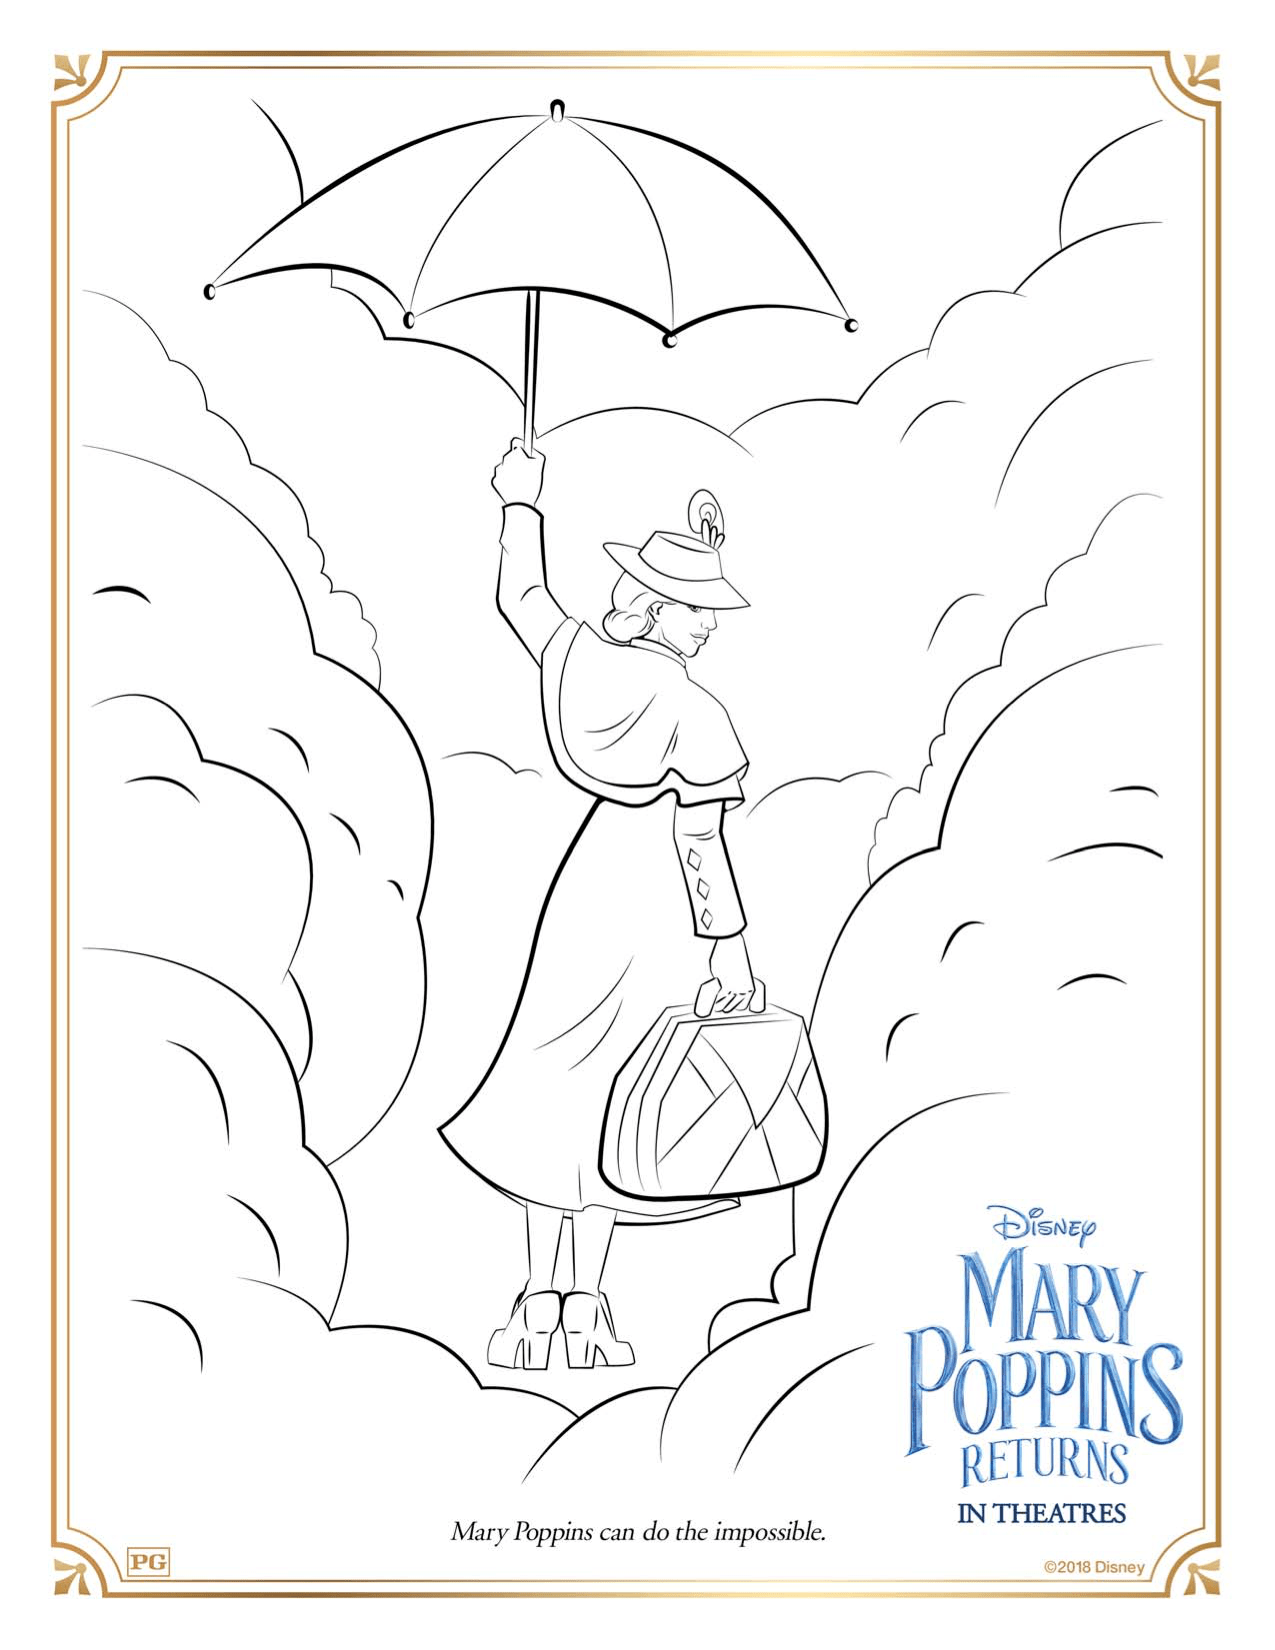 Funny Mary Poppins returns coloring page for children